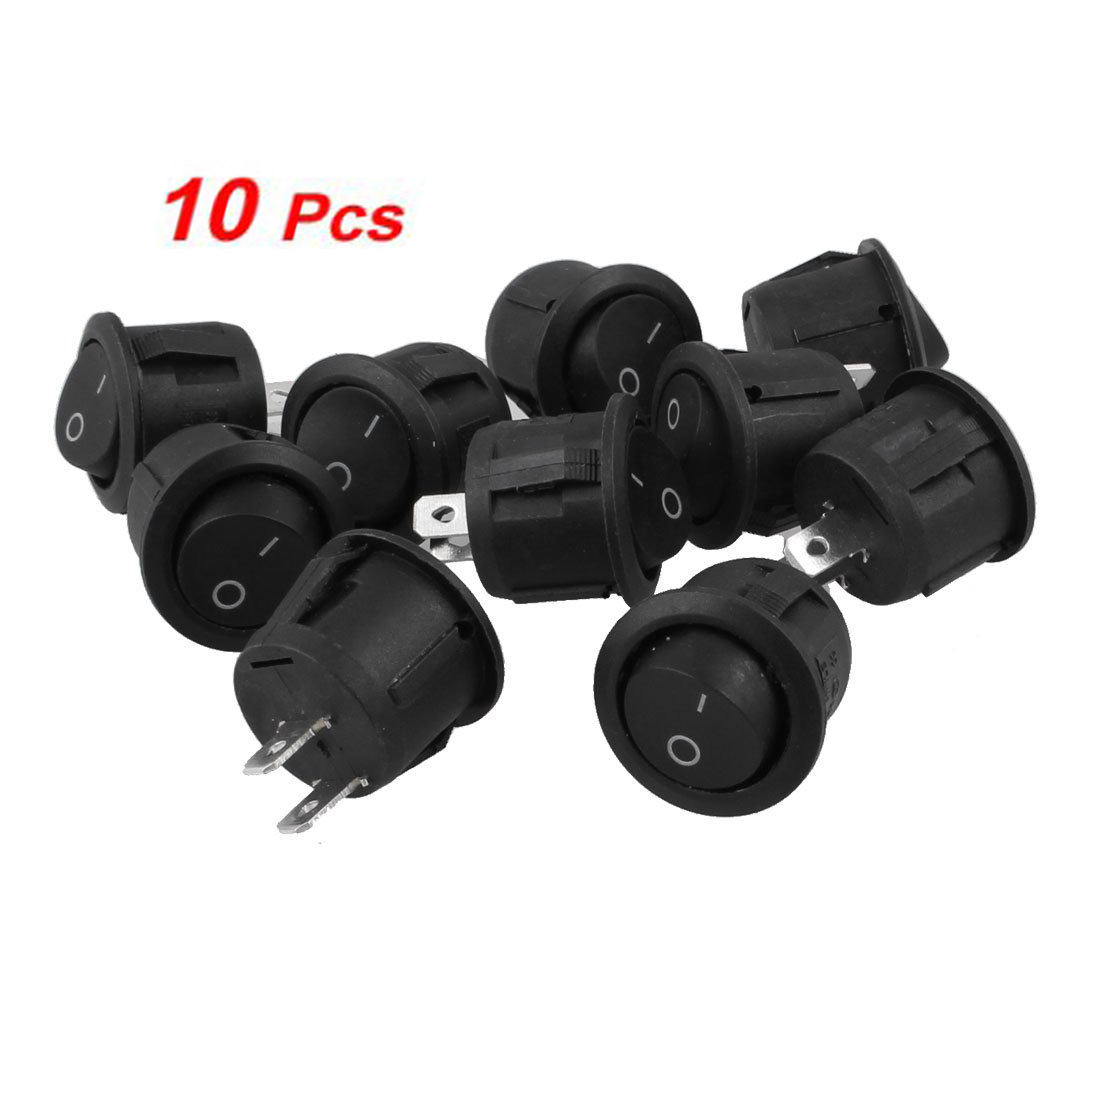 Promotion! 10Pcs AC 6A 10A 250V On Off Snap in SPST Round Boat Rocker Switch Black 5 pcs ac 6a 250v 10a 125v 3 pin black button on on round boat rocker switch